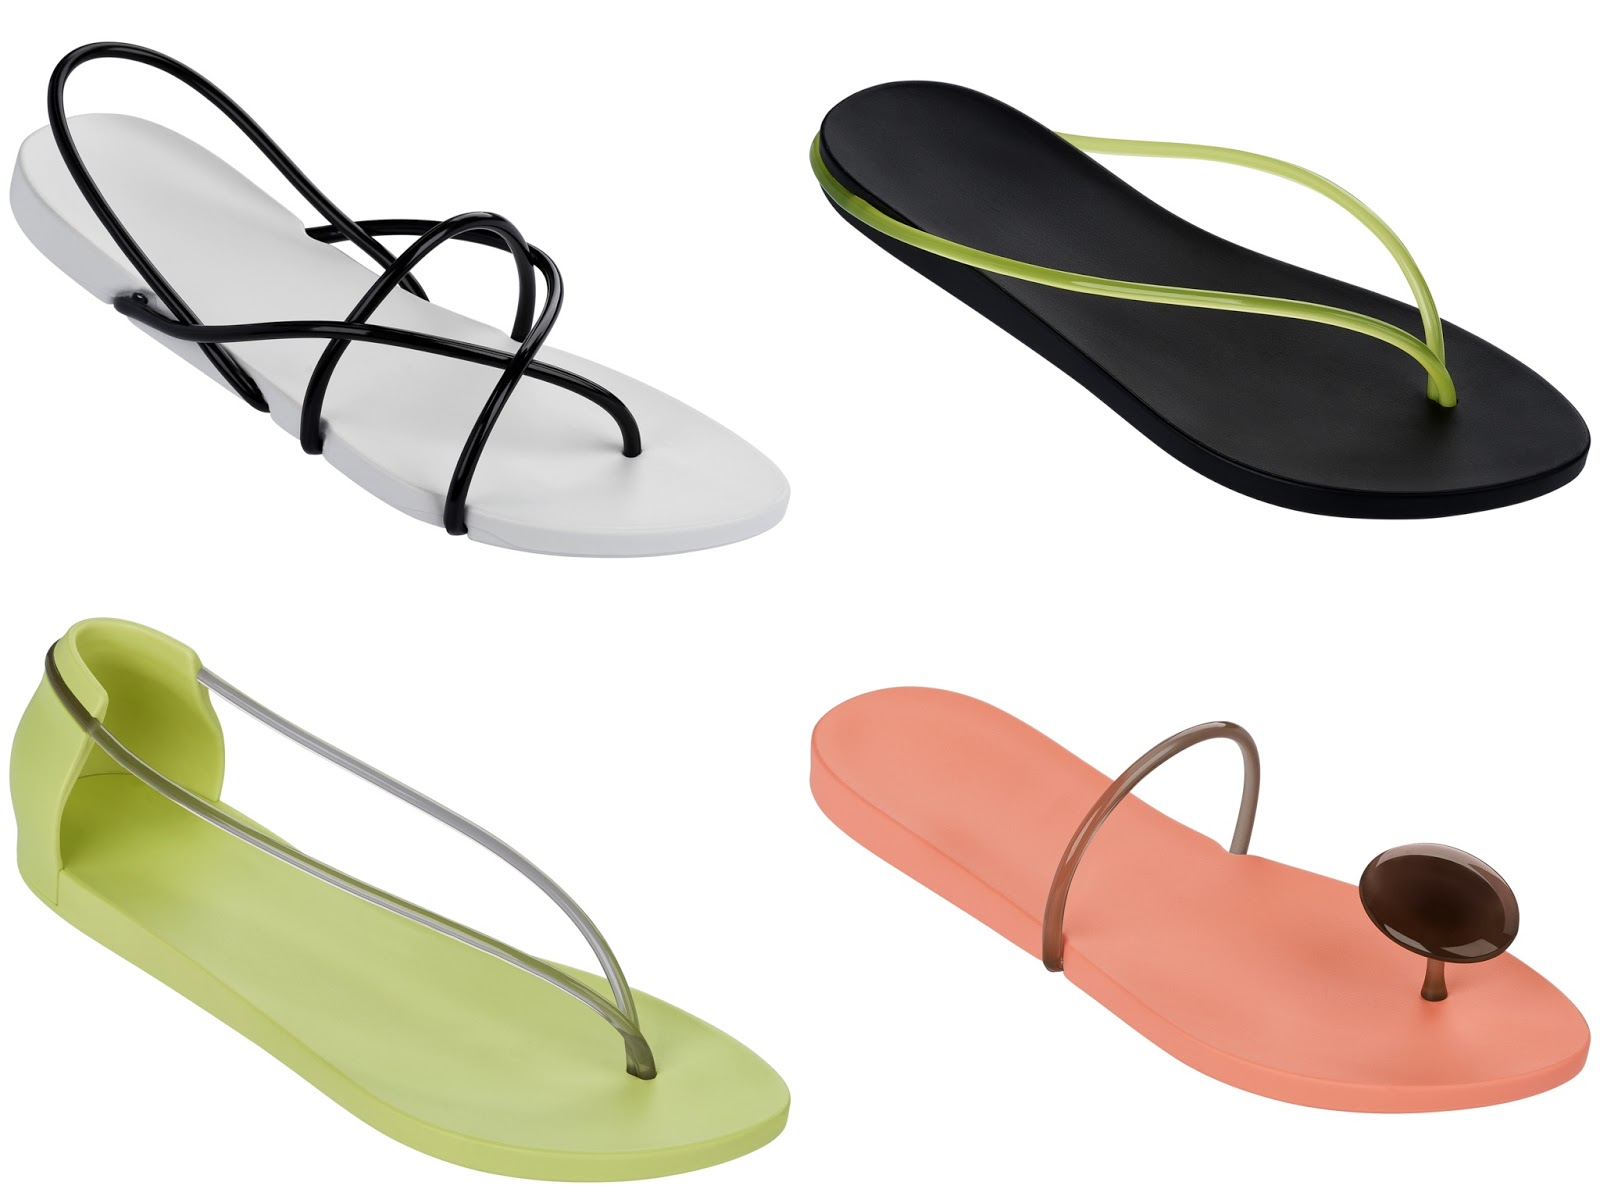 062ee925962e The Ipanema with STARCK Collection boasts four distinct flat sandal  designs  Thing M Fem Sandals